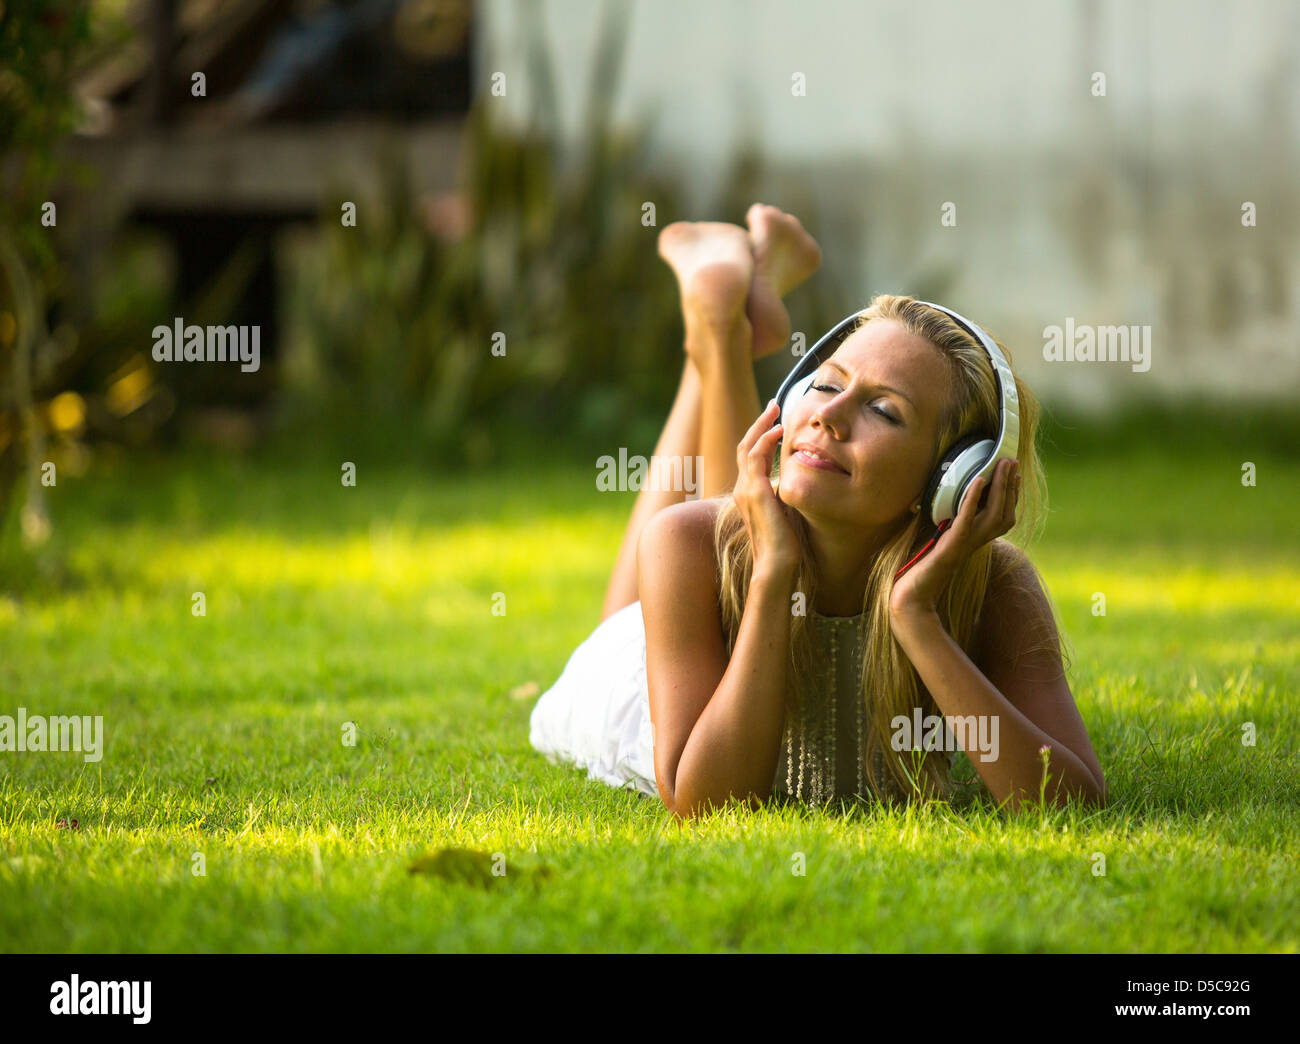 Happiness lovely girl with headphones enjoying nature and music at sunny day - Stock Image